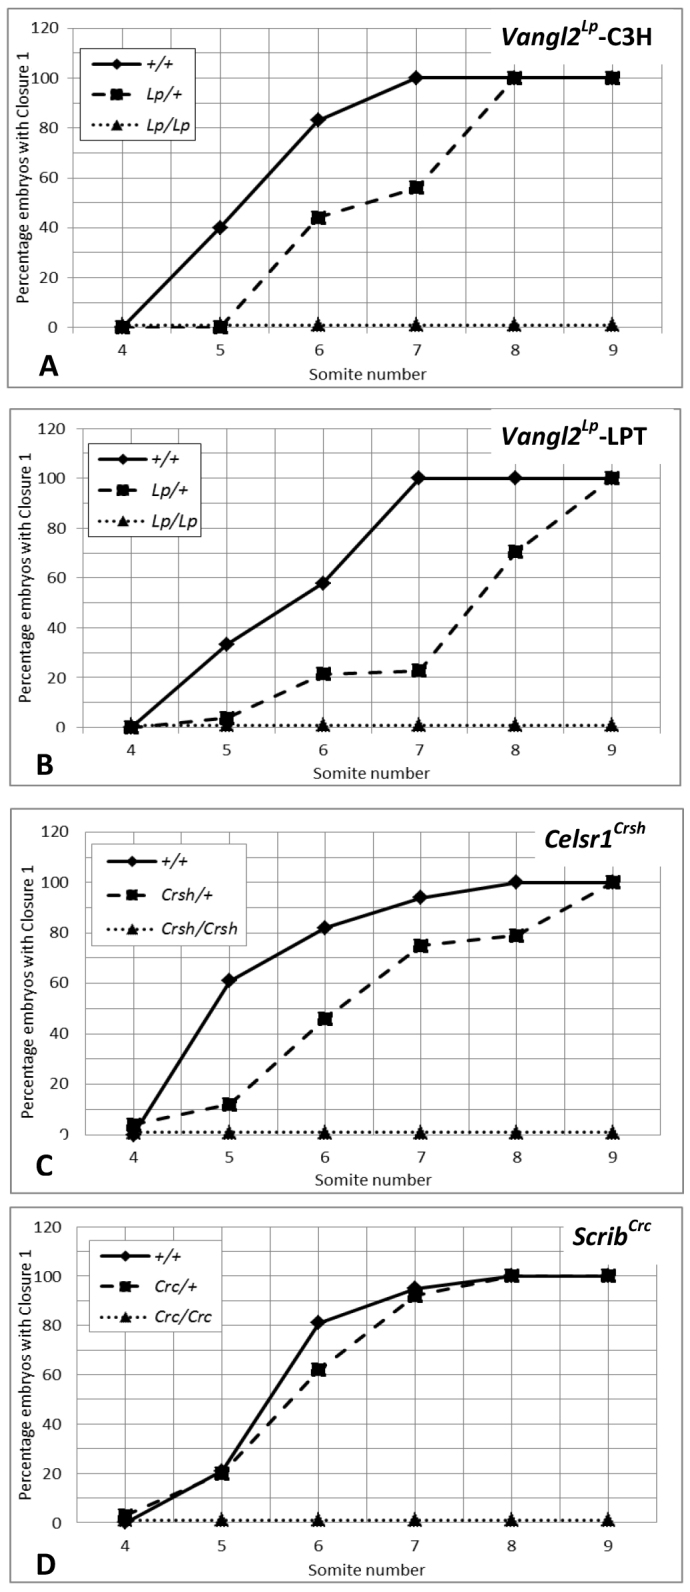 Delayed initiation of neural tube closure in Celsr1 Crsh /+ and Vangl2 Lp /+ but not in Scrib Crc /+ embryos. Proportion of E8.5 embryos that initiate neural tube closure in the four- to nine-somite stage interval is shown for wild type (solid line), heterozygous mutants (dashed line) and homozygous mutants (dotted line). (A) Vangl2 Lp mutant strain (congenic on C3H/HeH; n =22 +/+, 42 Lp /+, 16 Lp/Lp ); (B) Vangl2 Lp mutant strain (on LPT/Le × CBA background; n =55 +/+, 131 Lp /+, 49 Lp/Lp ); (C) Celsr1 Crsh mutant strain ( n =75 +/+, 175 Crsh /+, 61 Crsh/Crsh ); (D) Scrib Crc mutant strain (congenic on C3H/HeH; n =163 +/+, 371 Crc /+, 154 Crc/Crc ). Homozygotes all fail to initiate neural tube closure. Wild-type embryos undergo Closure 1 between the five- and eight-somite stages. Vangl2 Lp /+ and Celsr1 Crsh /+ heterozygotes are delayed in closure initiation compared with wild type ( Vangl2 Lp -C3H : P =0.03; Vangl2 Lp -LPT : P